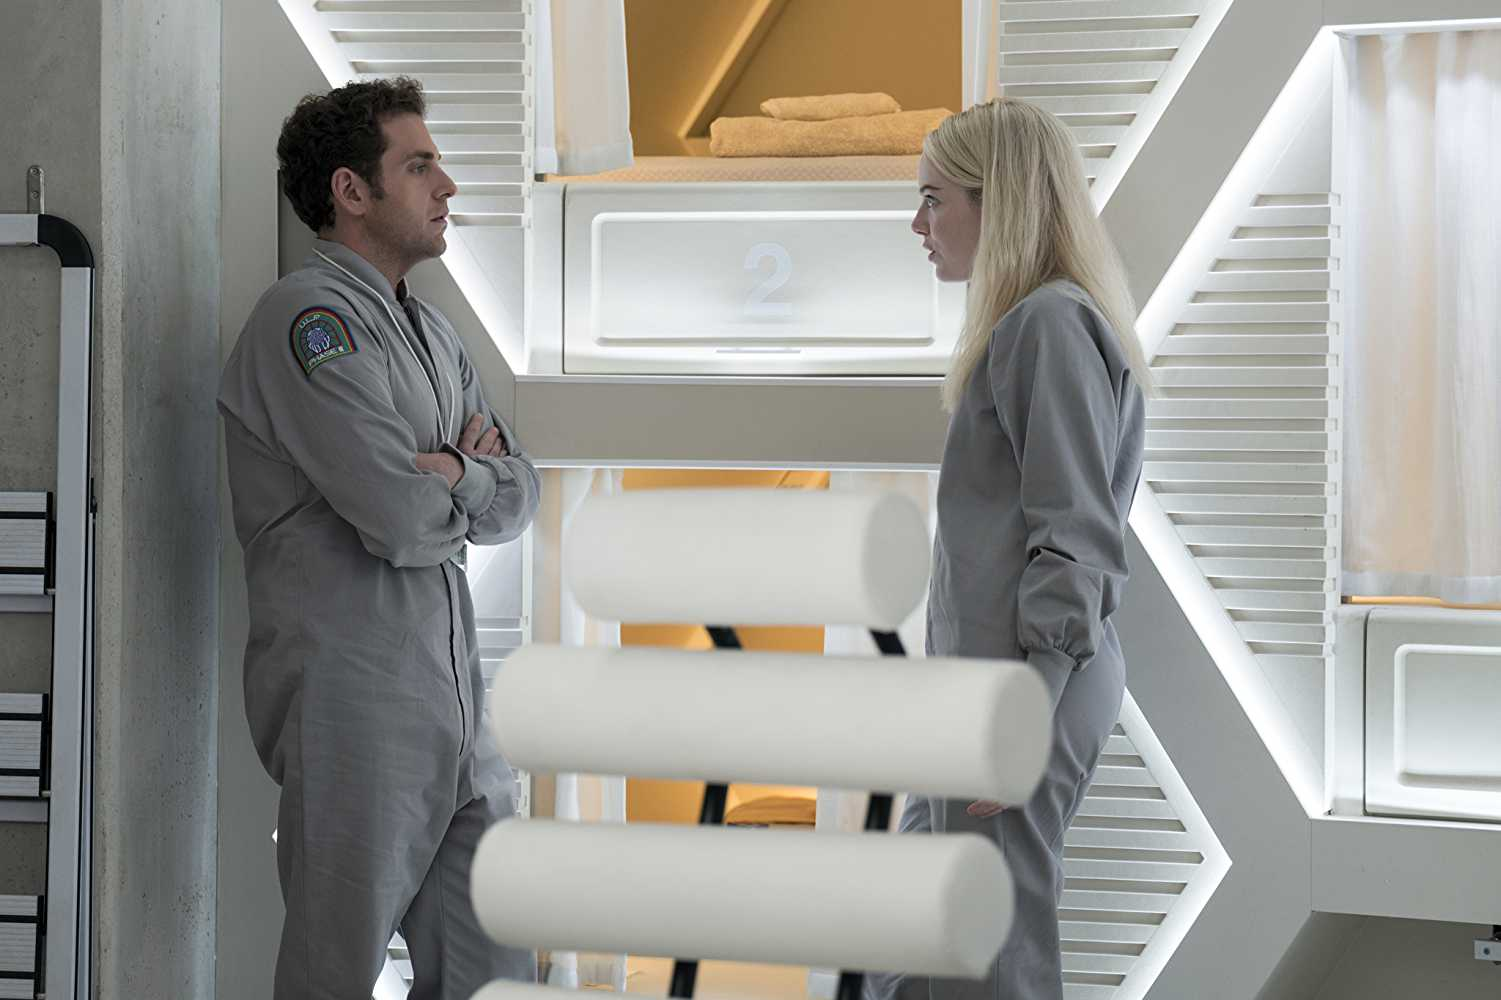 'Maniac' sees Jonah Hill and Emma Stone reunited for the first time since 'Superbad' (Source: IMDb)